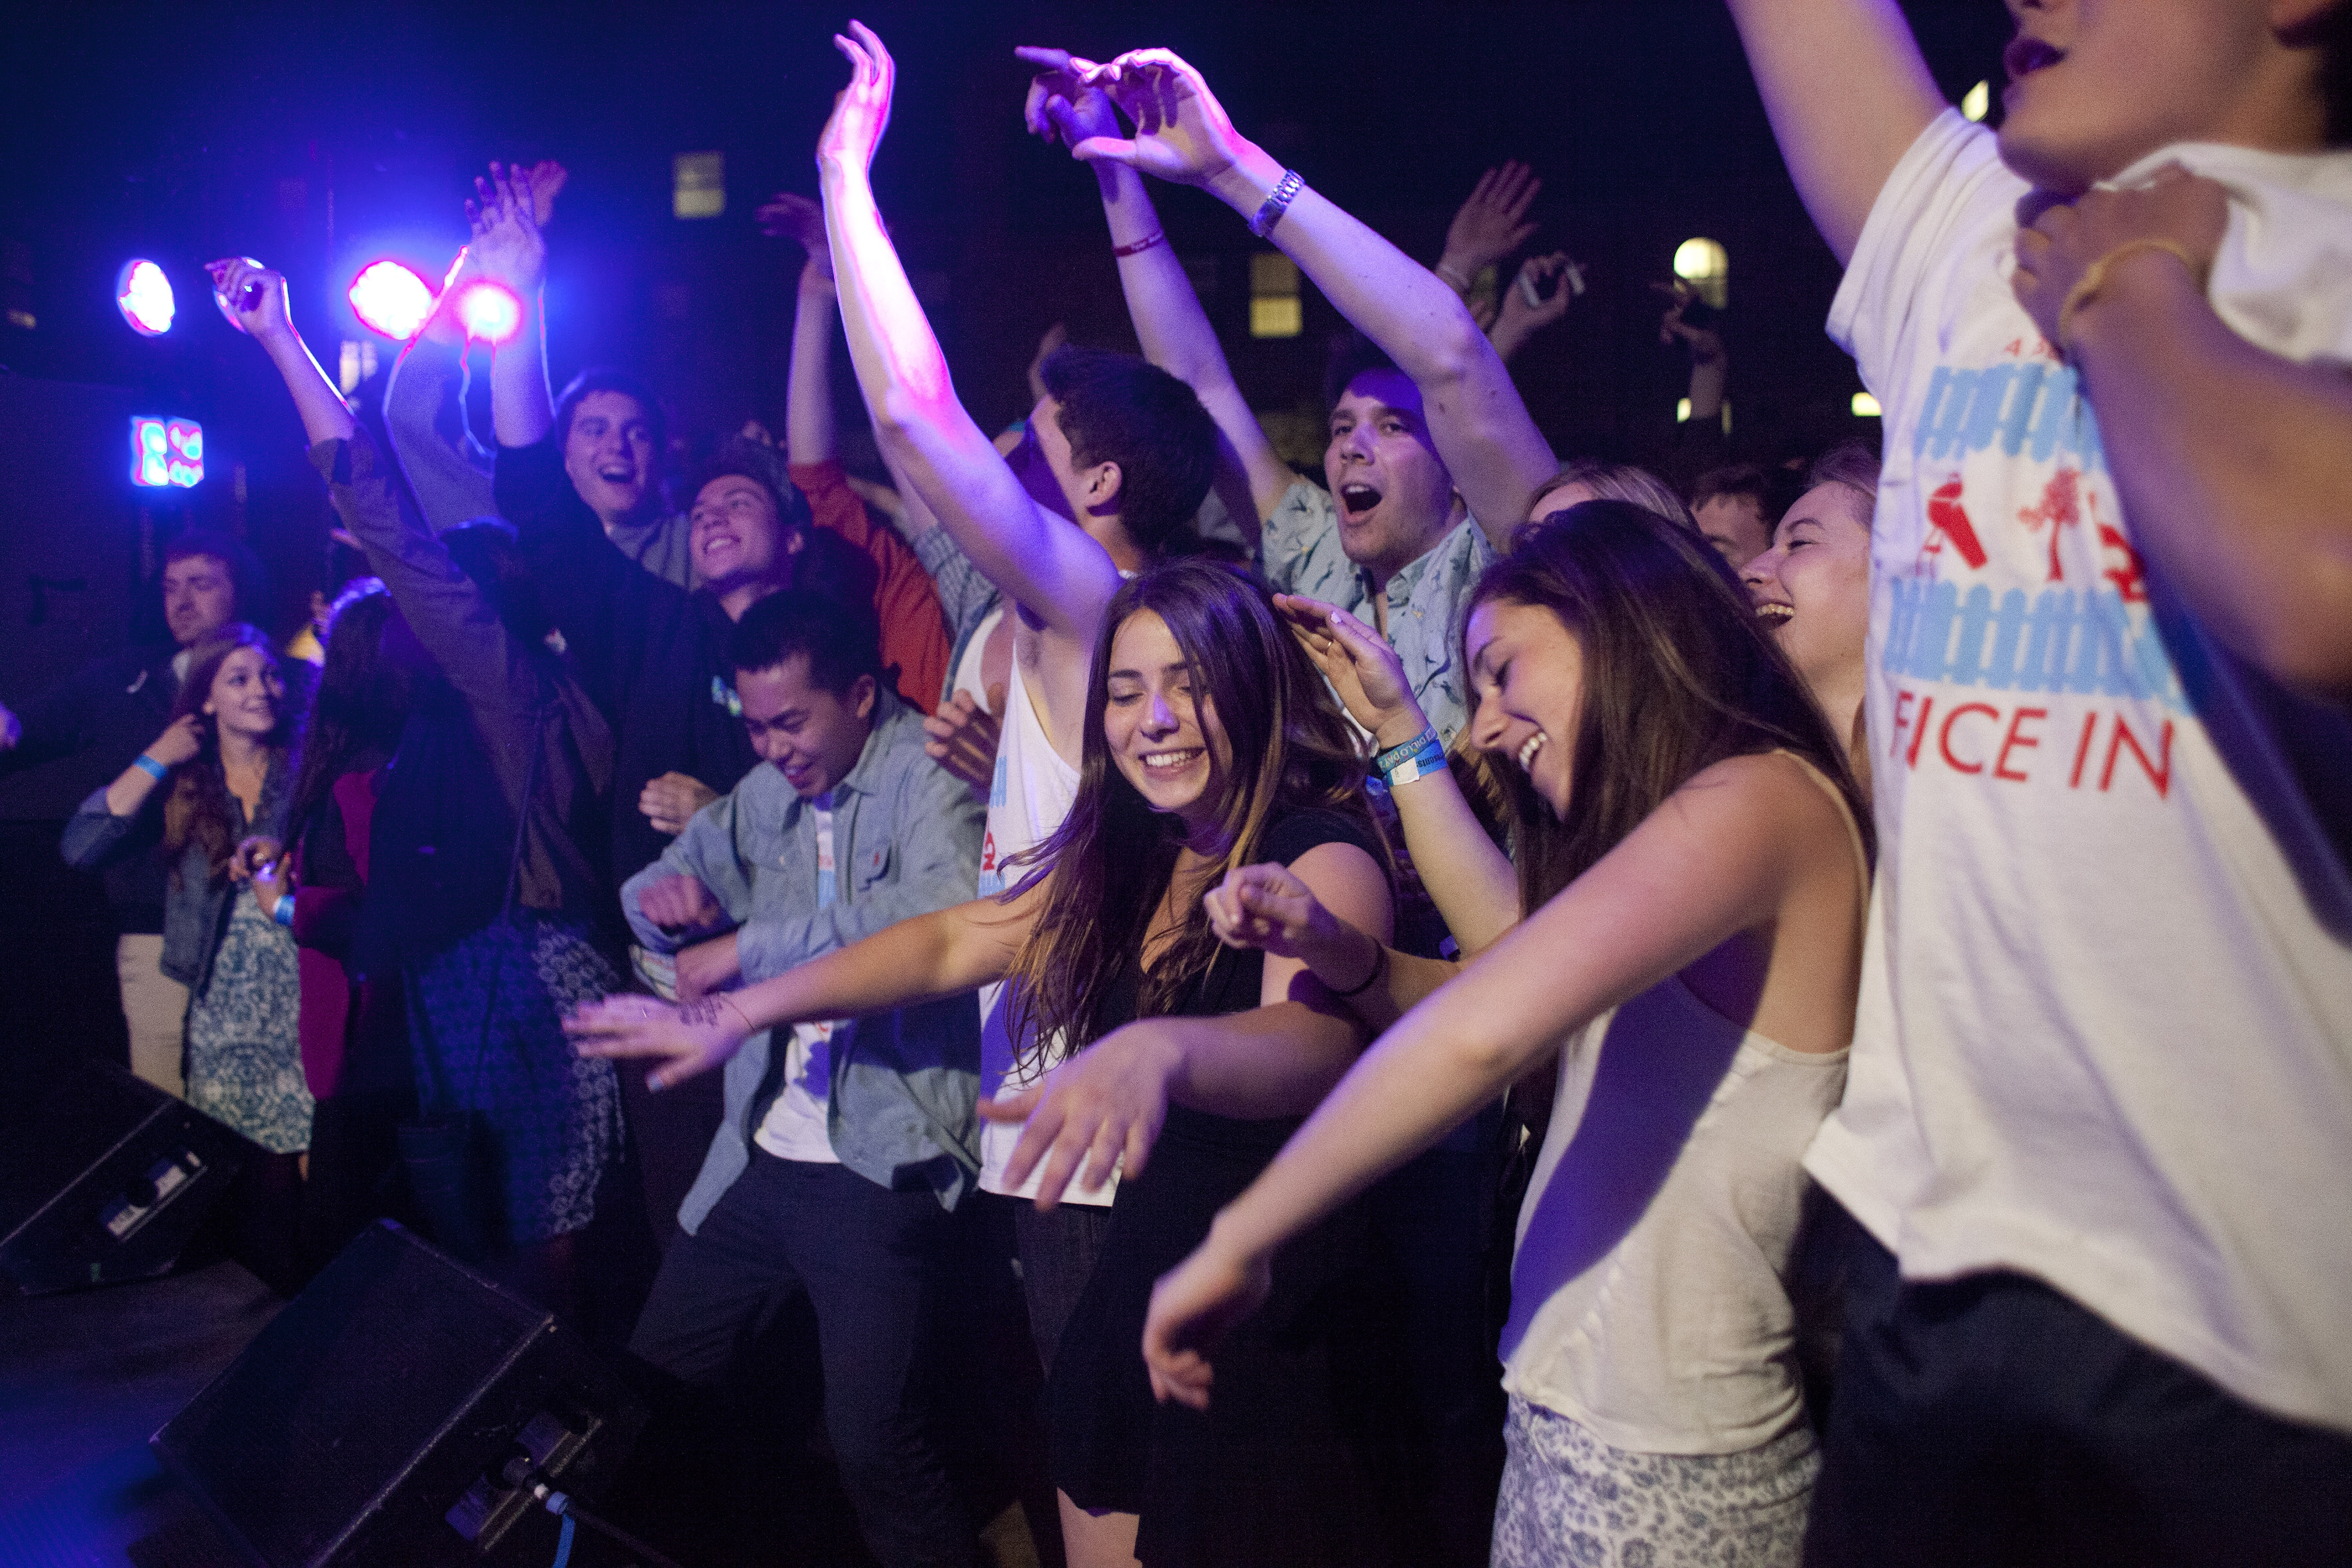 A crowd dances at a fundraiser hosted by a fraternity at Northwestern University in Evanston, Ill. Northwestern put two fraternities on probation last year.